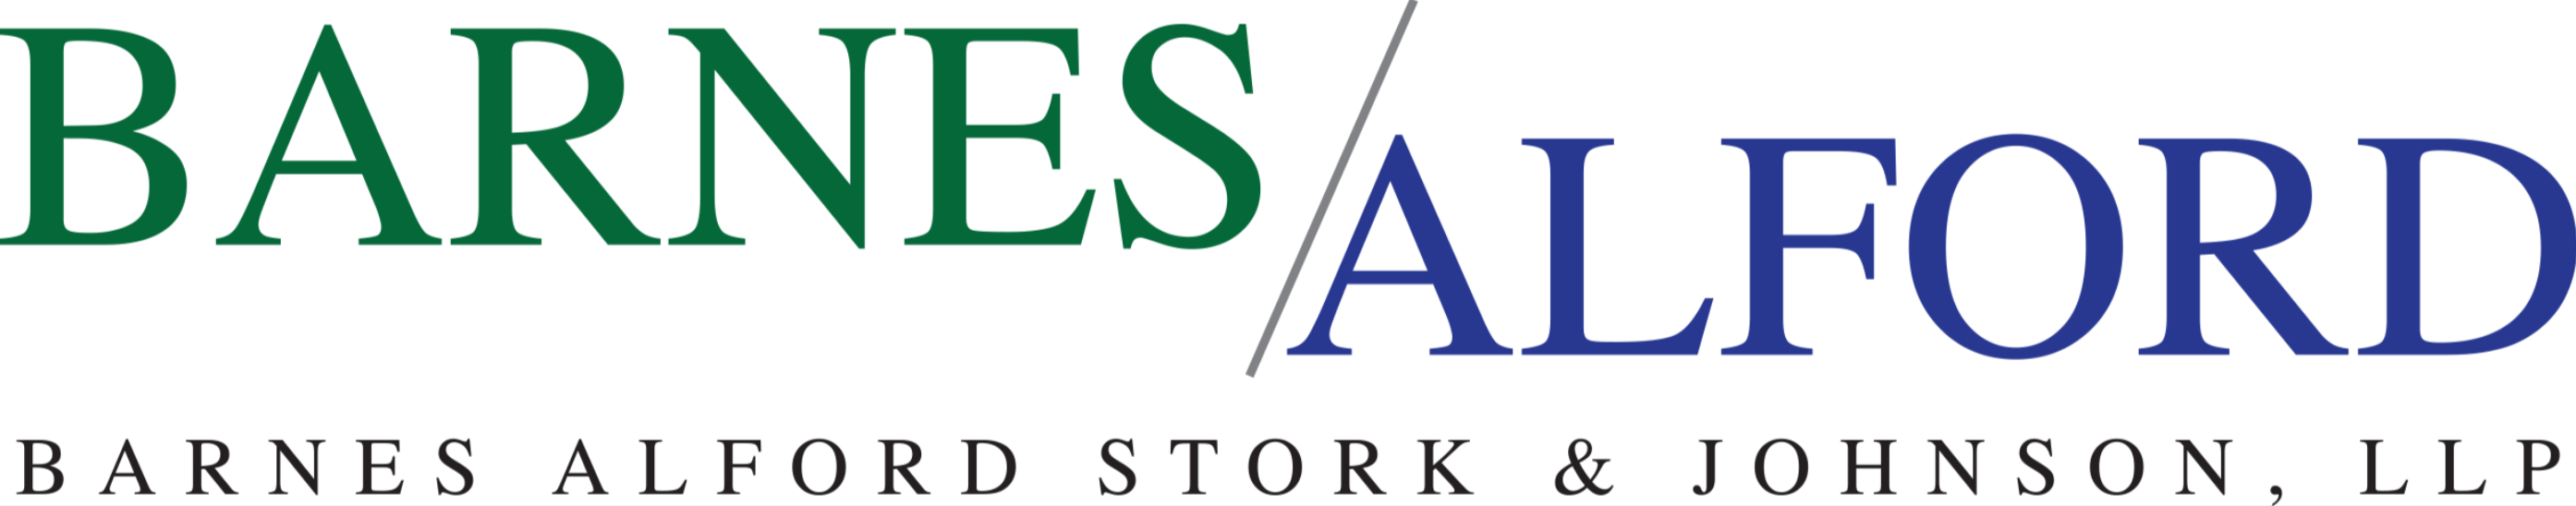 Thank you to our Gold Sponsor Barnes Alford Stork & Johnson, LLP